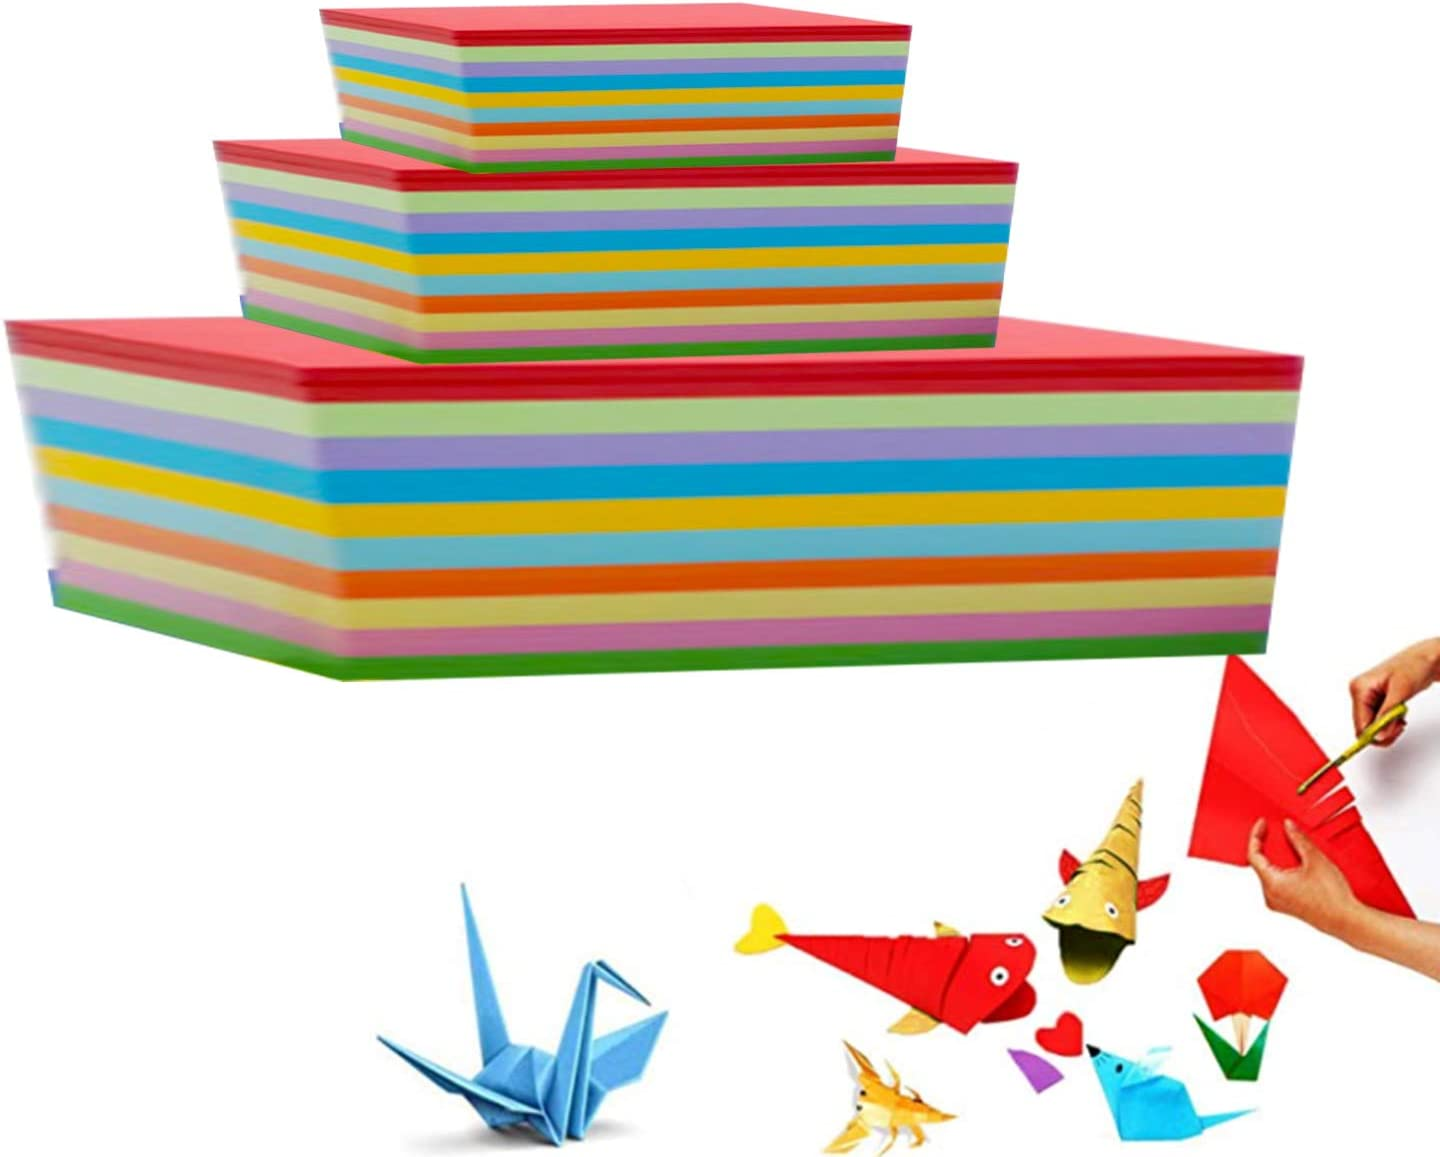 UgyDuky 200 Sheets Origami Paper,25 x 25 cm 10 Vivid Colors Square Fold Craft Paper for Kids DIY Arts and Crafts Projects